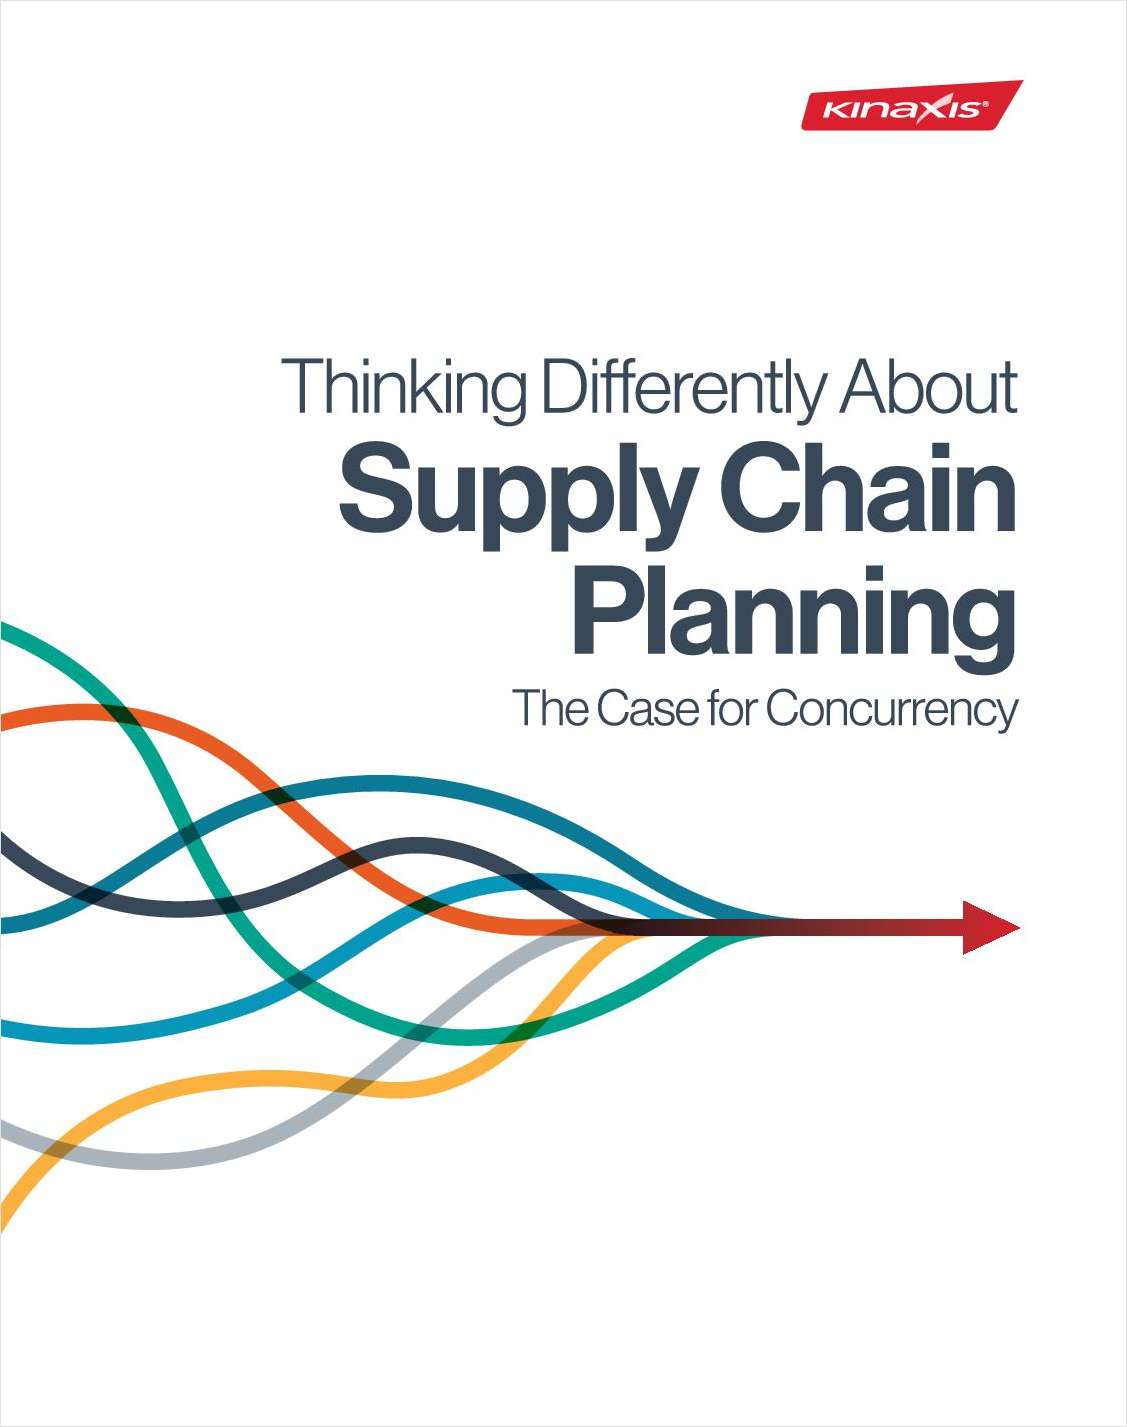 Thinking Differently About Supply Chain Planning: The Case for Concurrency